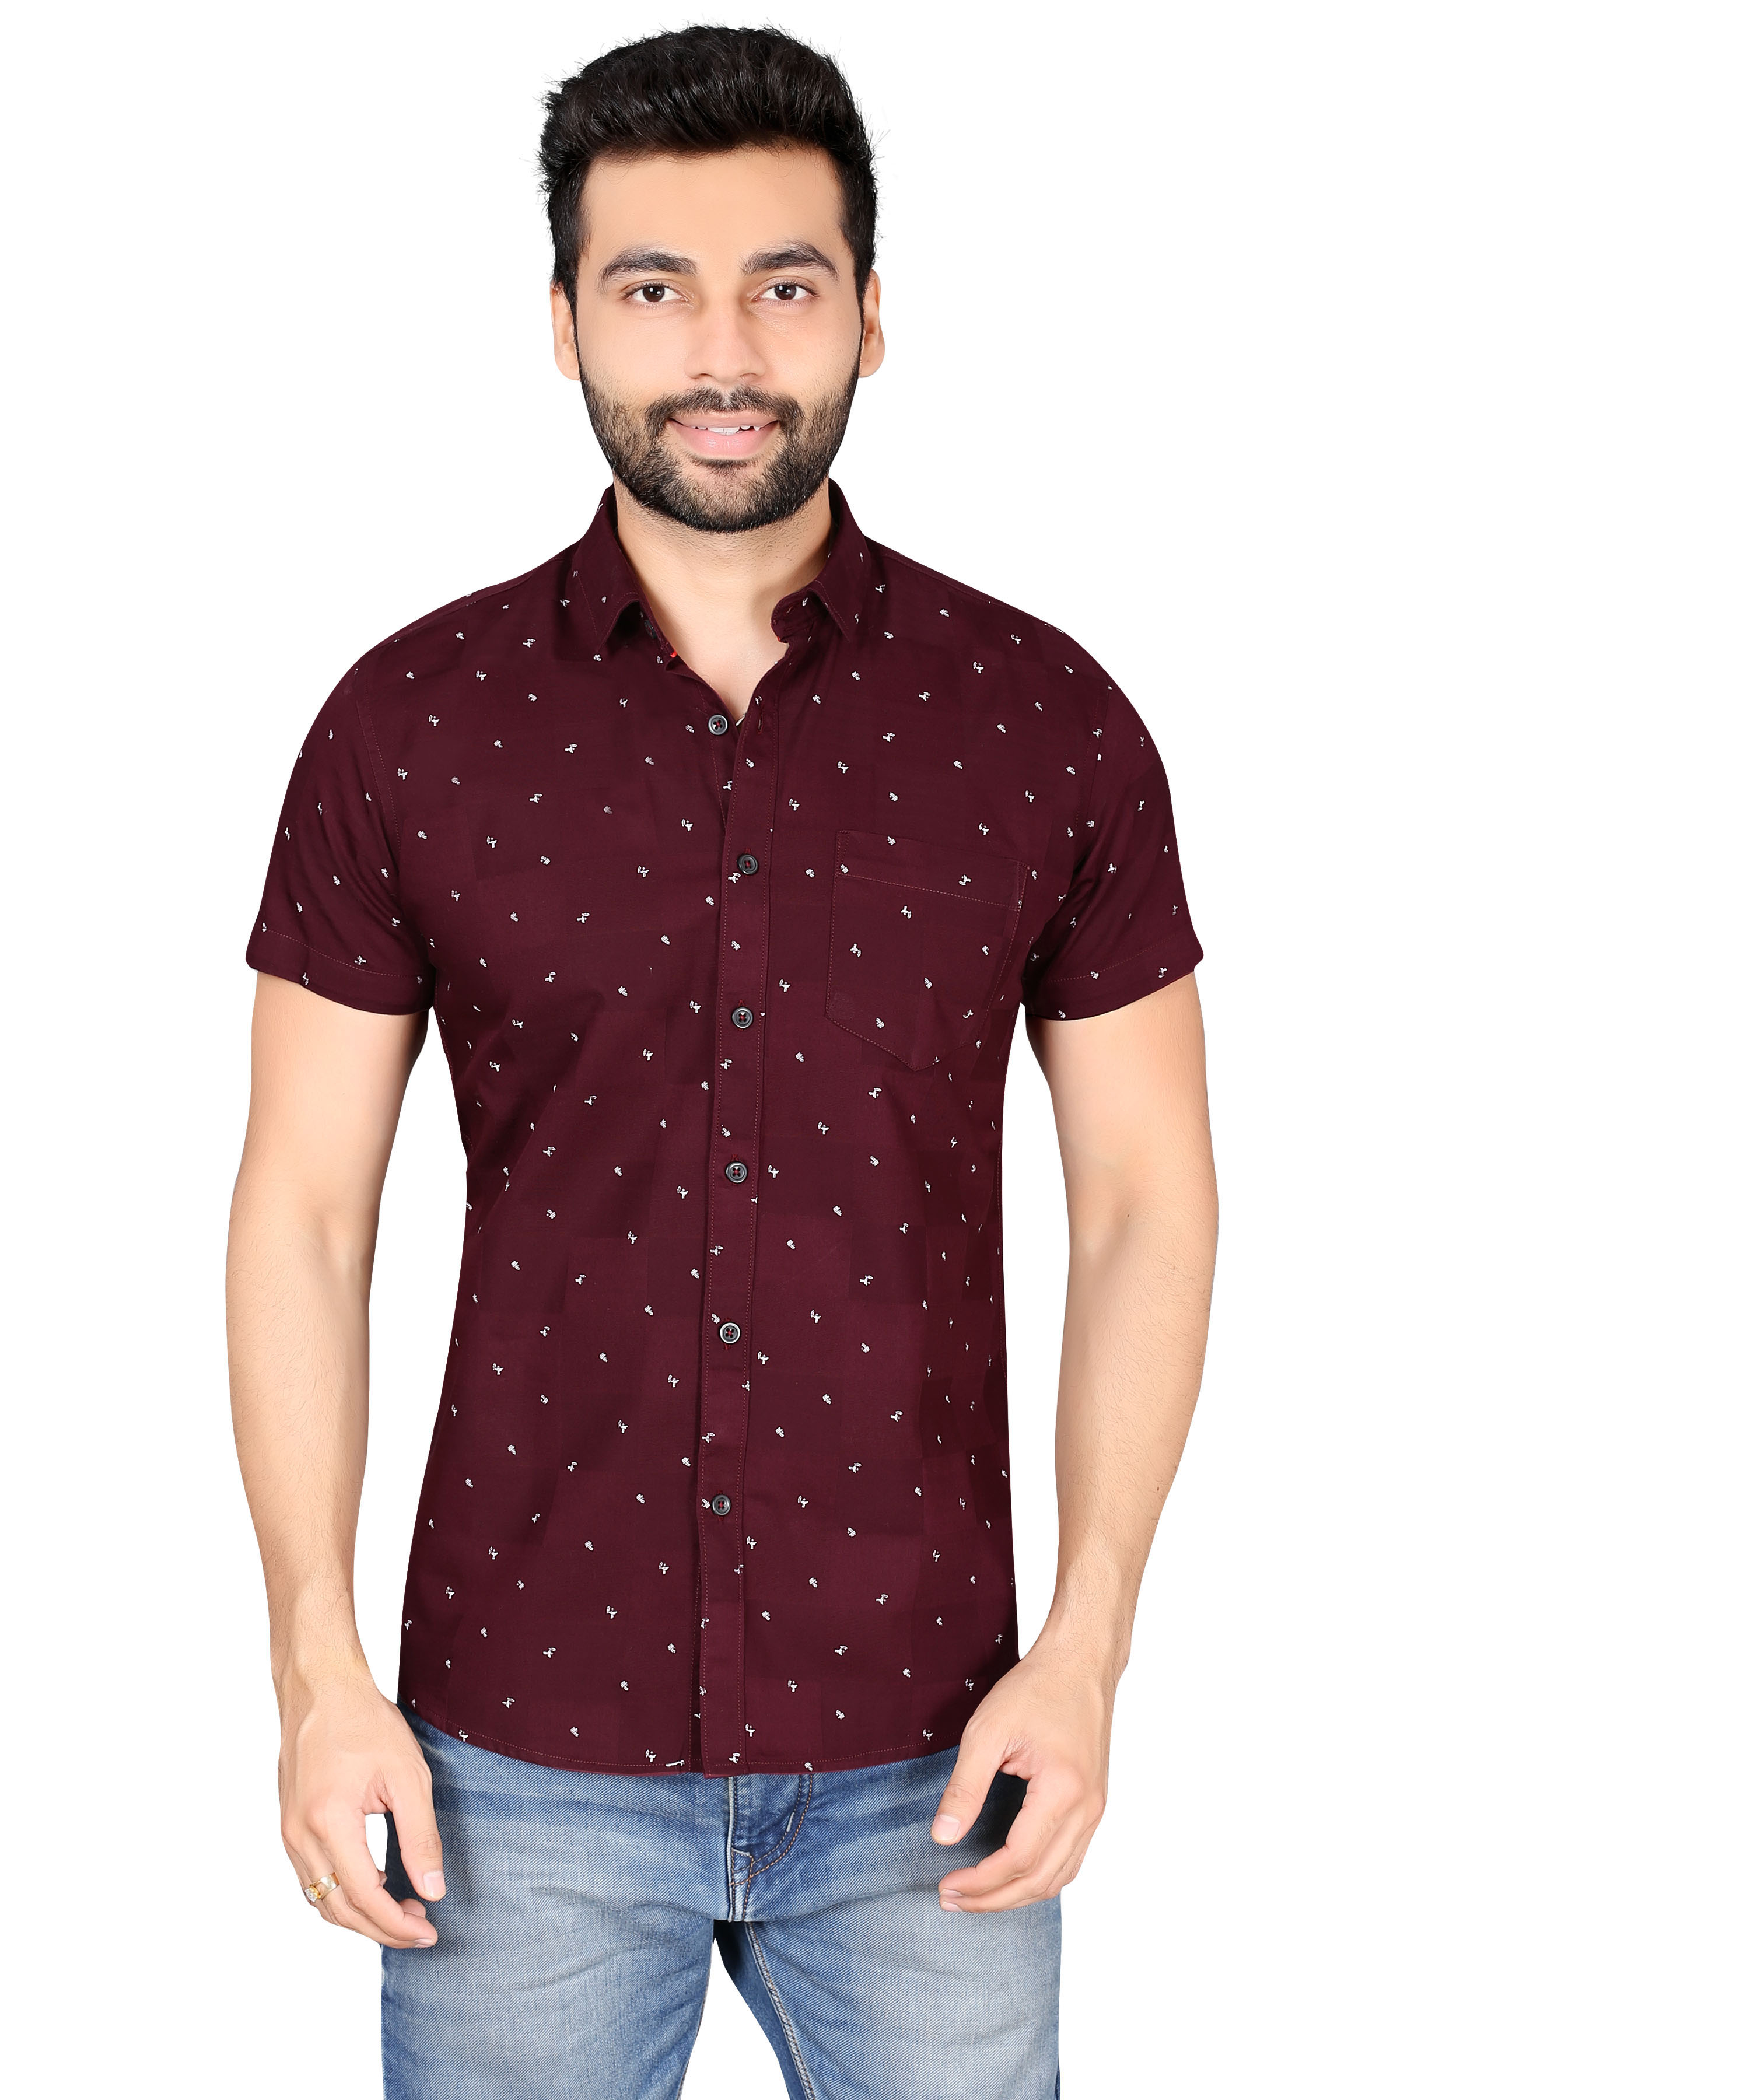 5th Anfold | FIFTH ANFOLD Printed casual pure cotton hlf  sleev spread collar maroon shirt